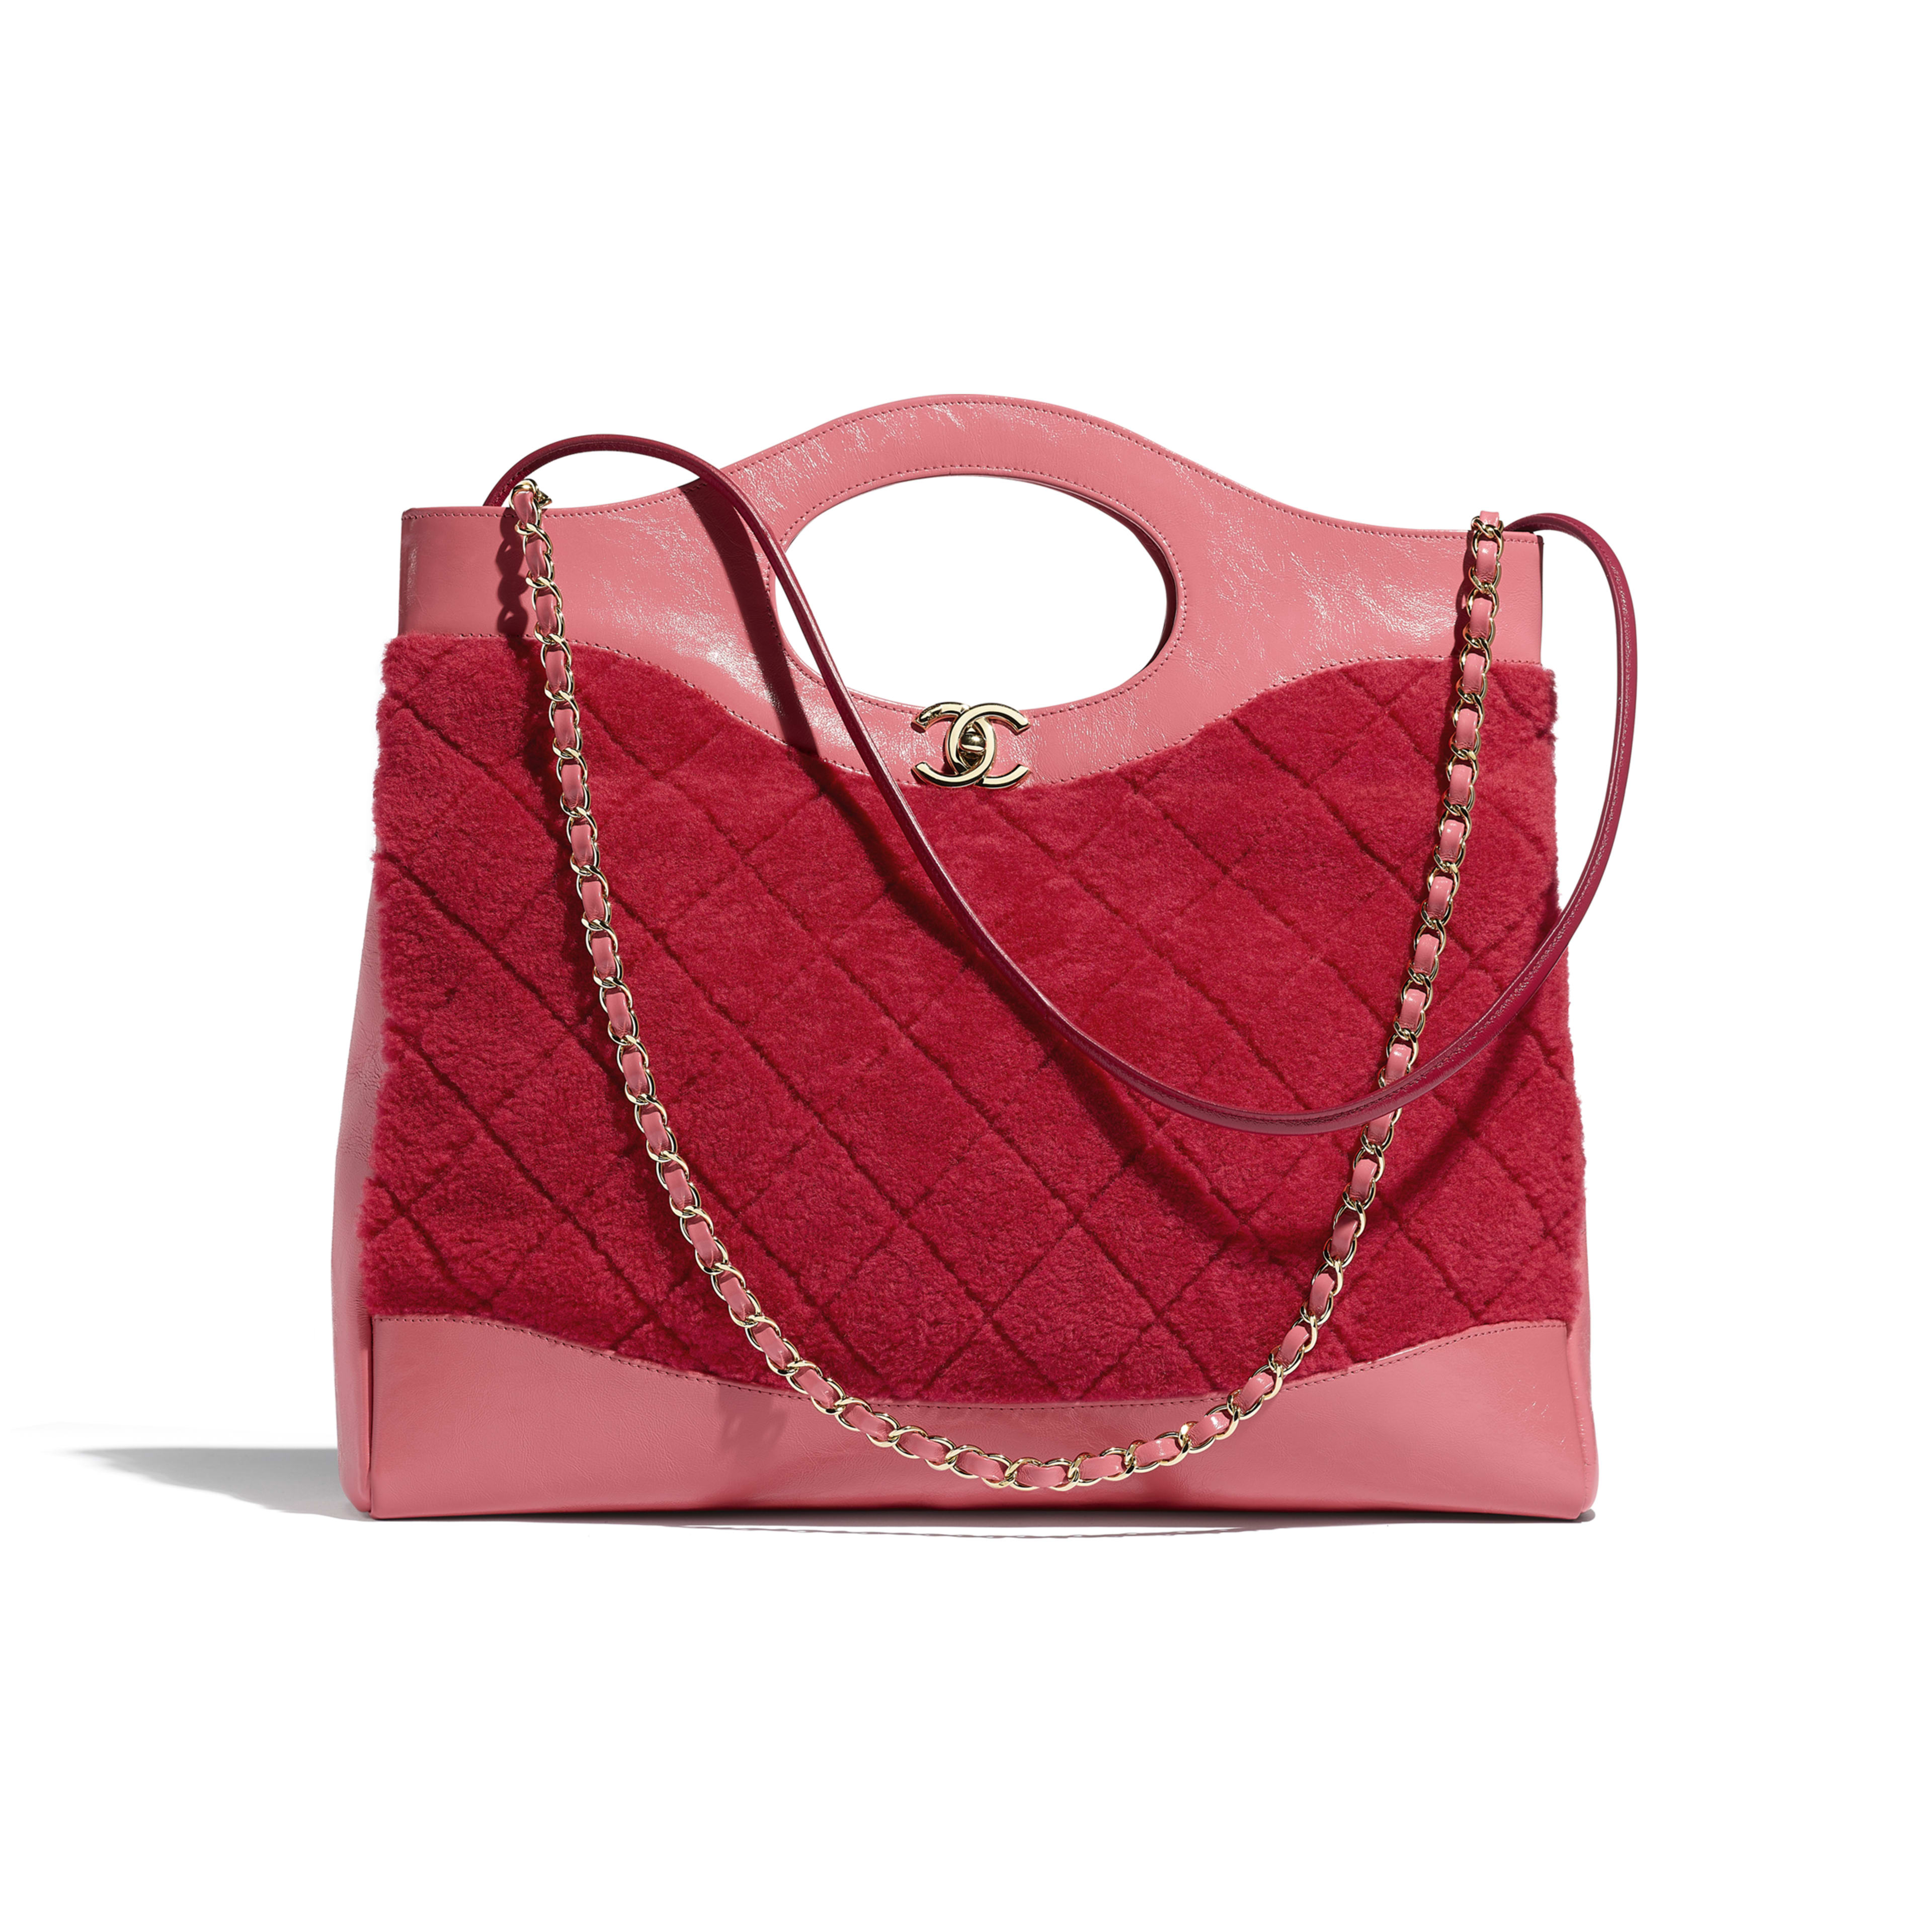 CHANEL 31 Shopping Bag - Red & Pink - Shearling Sheepskin, Calfskin & Gold-Tone Metal - Default view - see full sized version